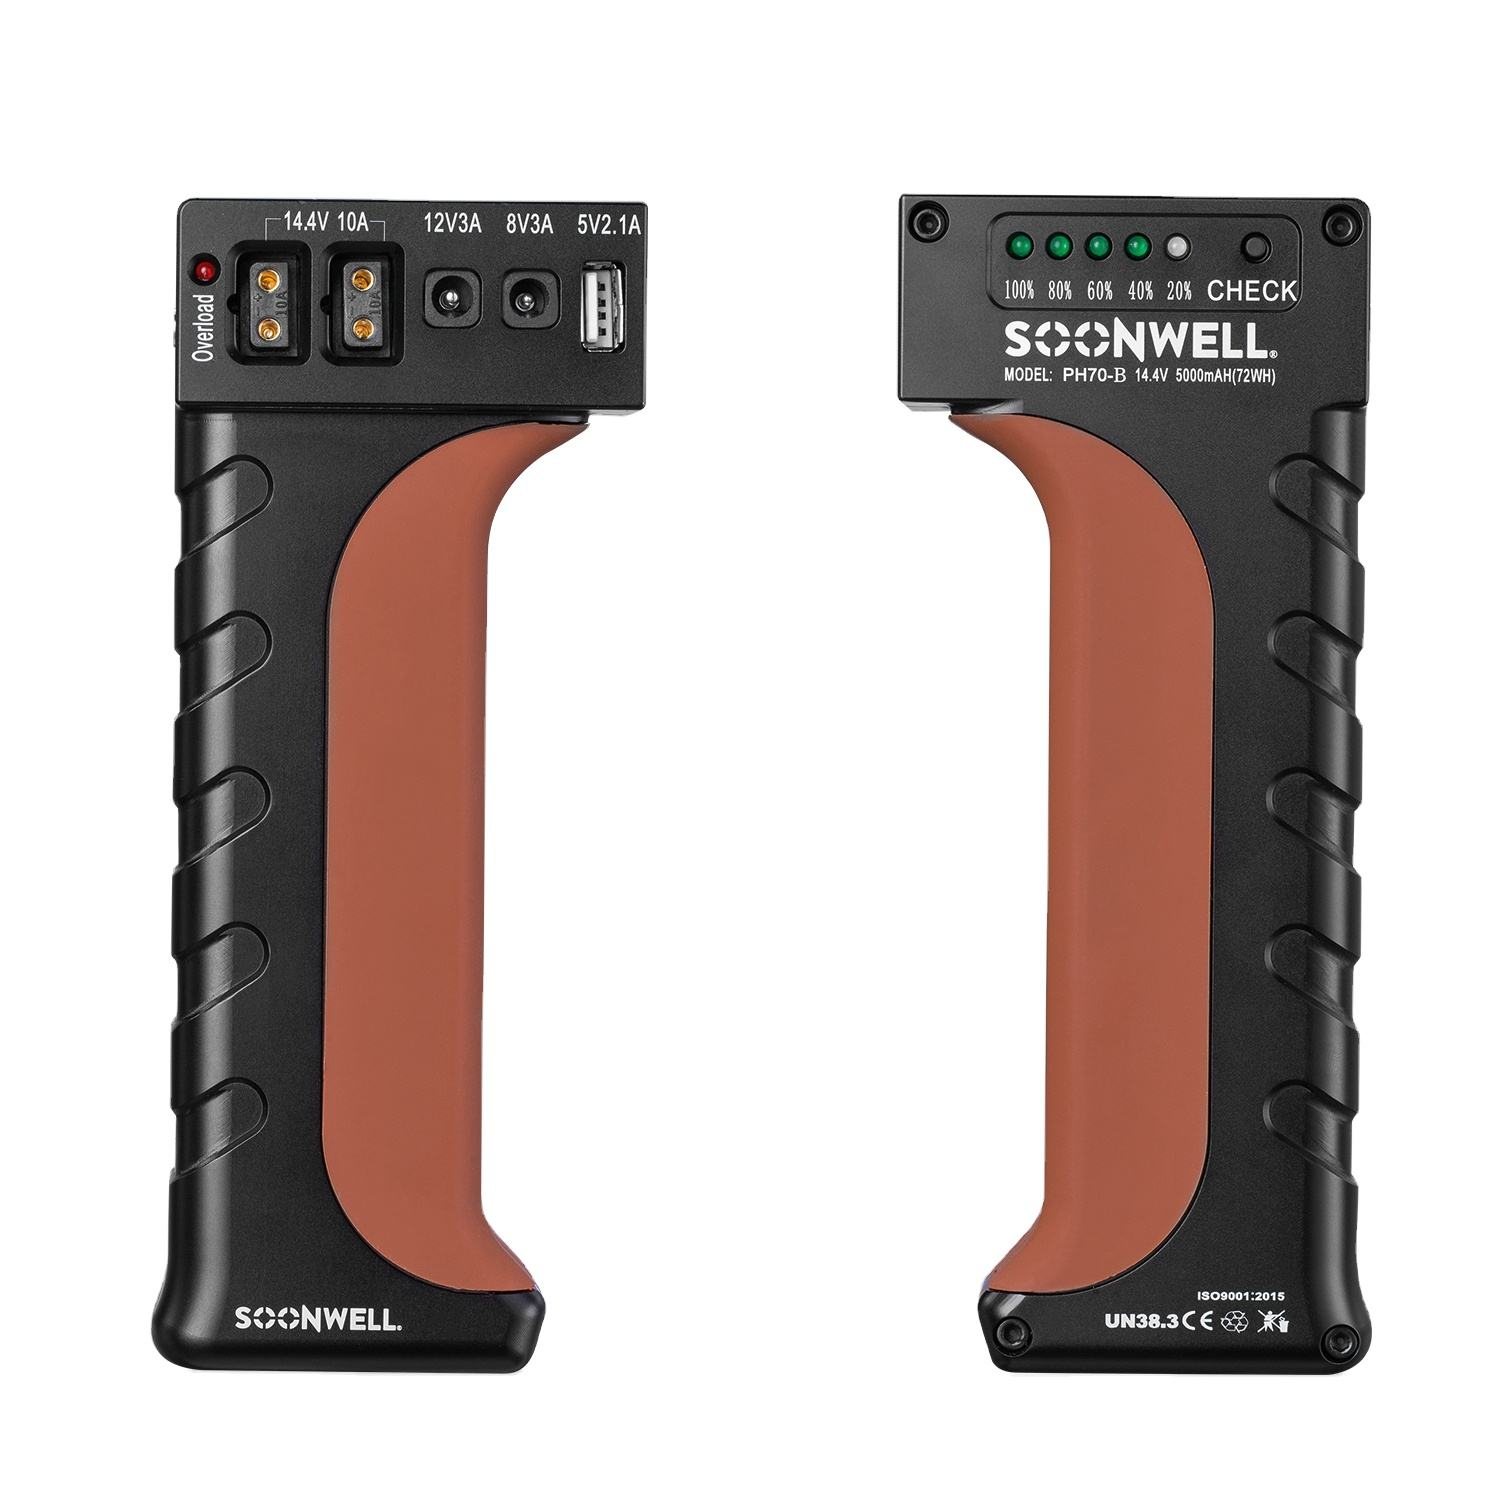 SOONWELL PH70 Kamera-Akku DSLR Backup Power Handle Grip für BMPCC-, Canon-und Nikon-Fotografie-Videokameras